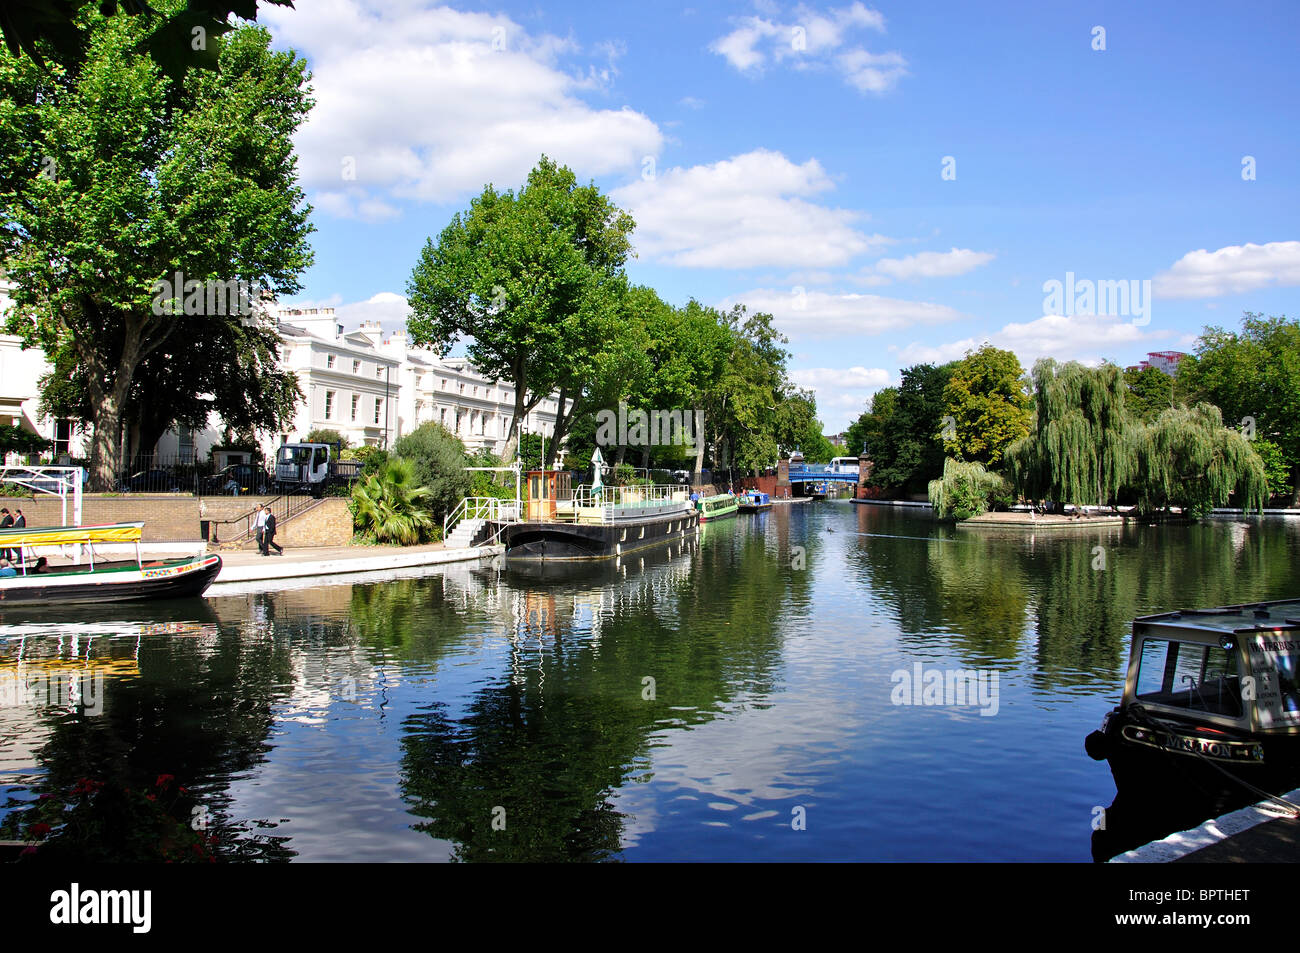 Little Venice, Maida Vale, City of Westminster, Greater London, England, United Kingdom Stock Photo